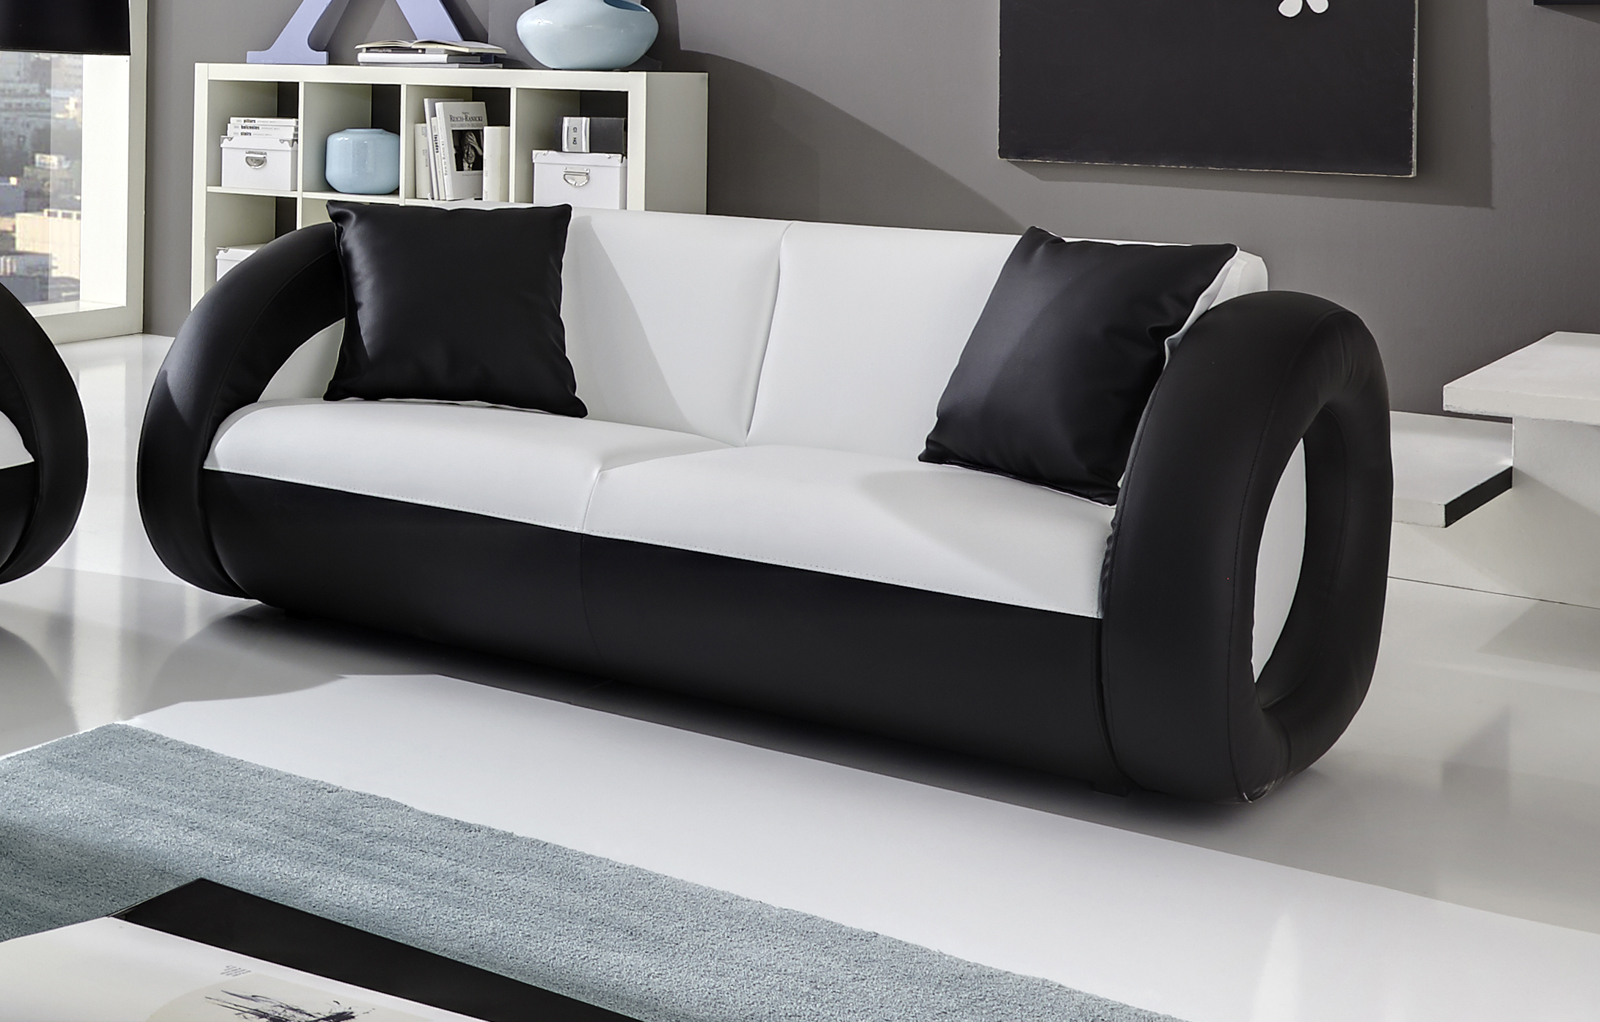 sam sofa garnitur farbauswahl onda 3 2 g nstig. Black Bedroom Furniture Sets. Home Design Ideas